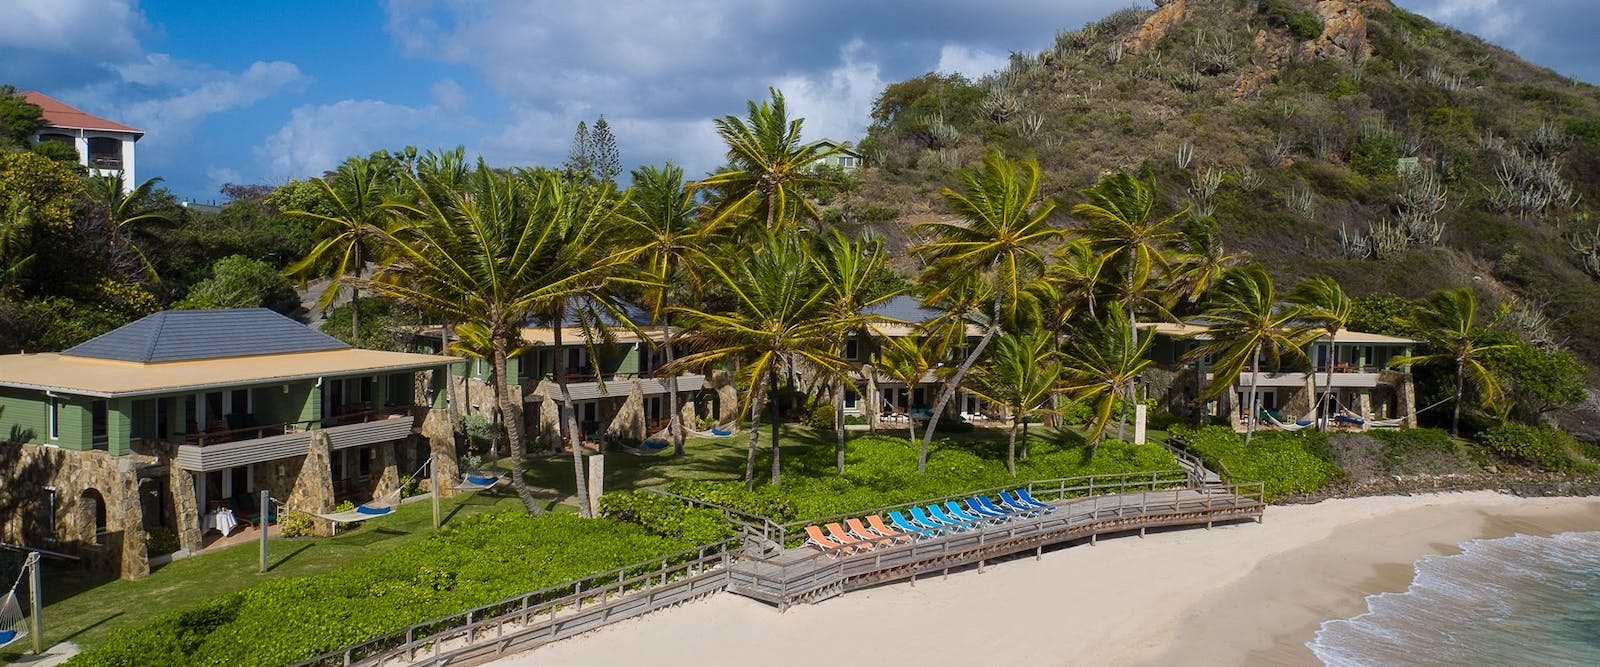 Exterior of Peter Island Resort & Spa, British Virgin Islands